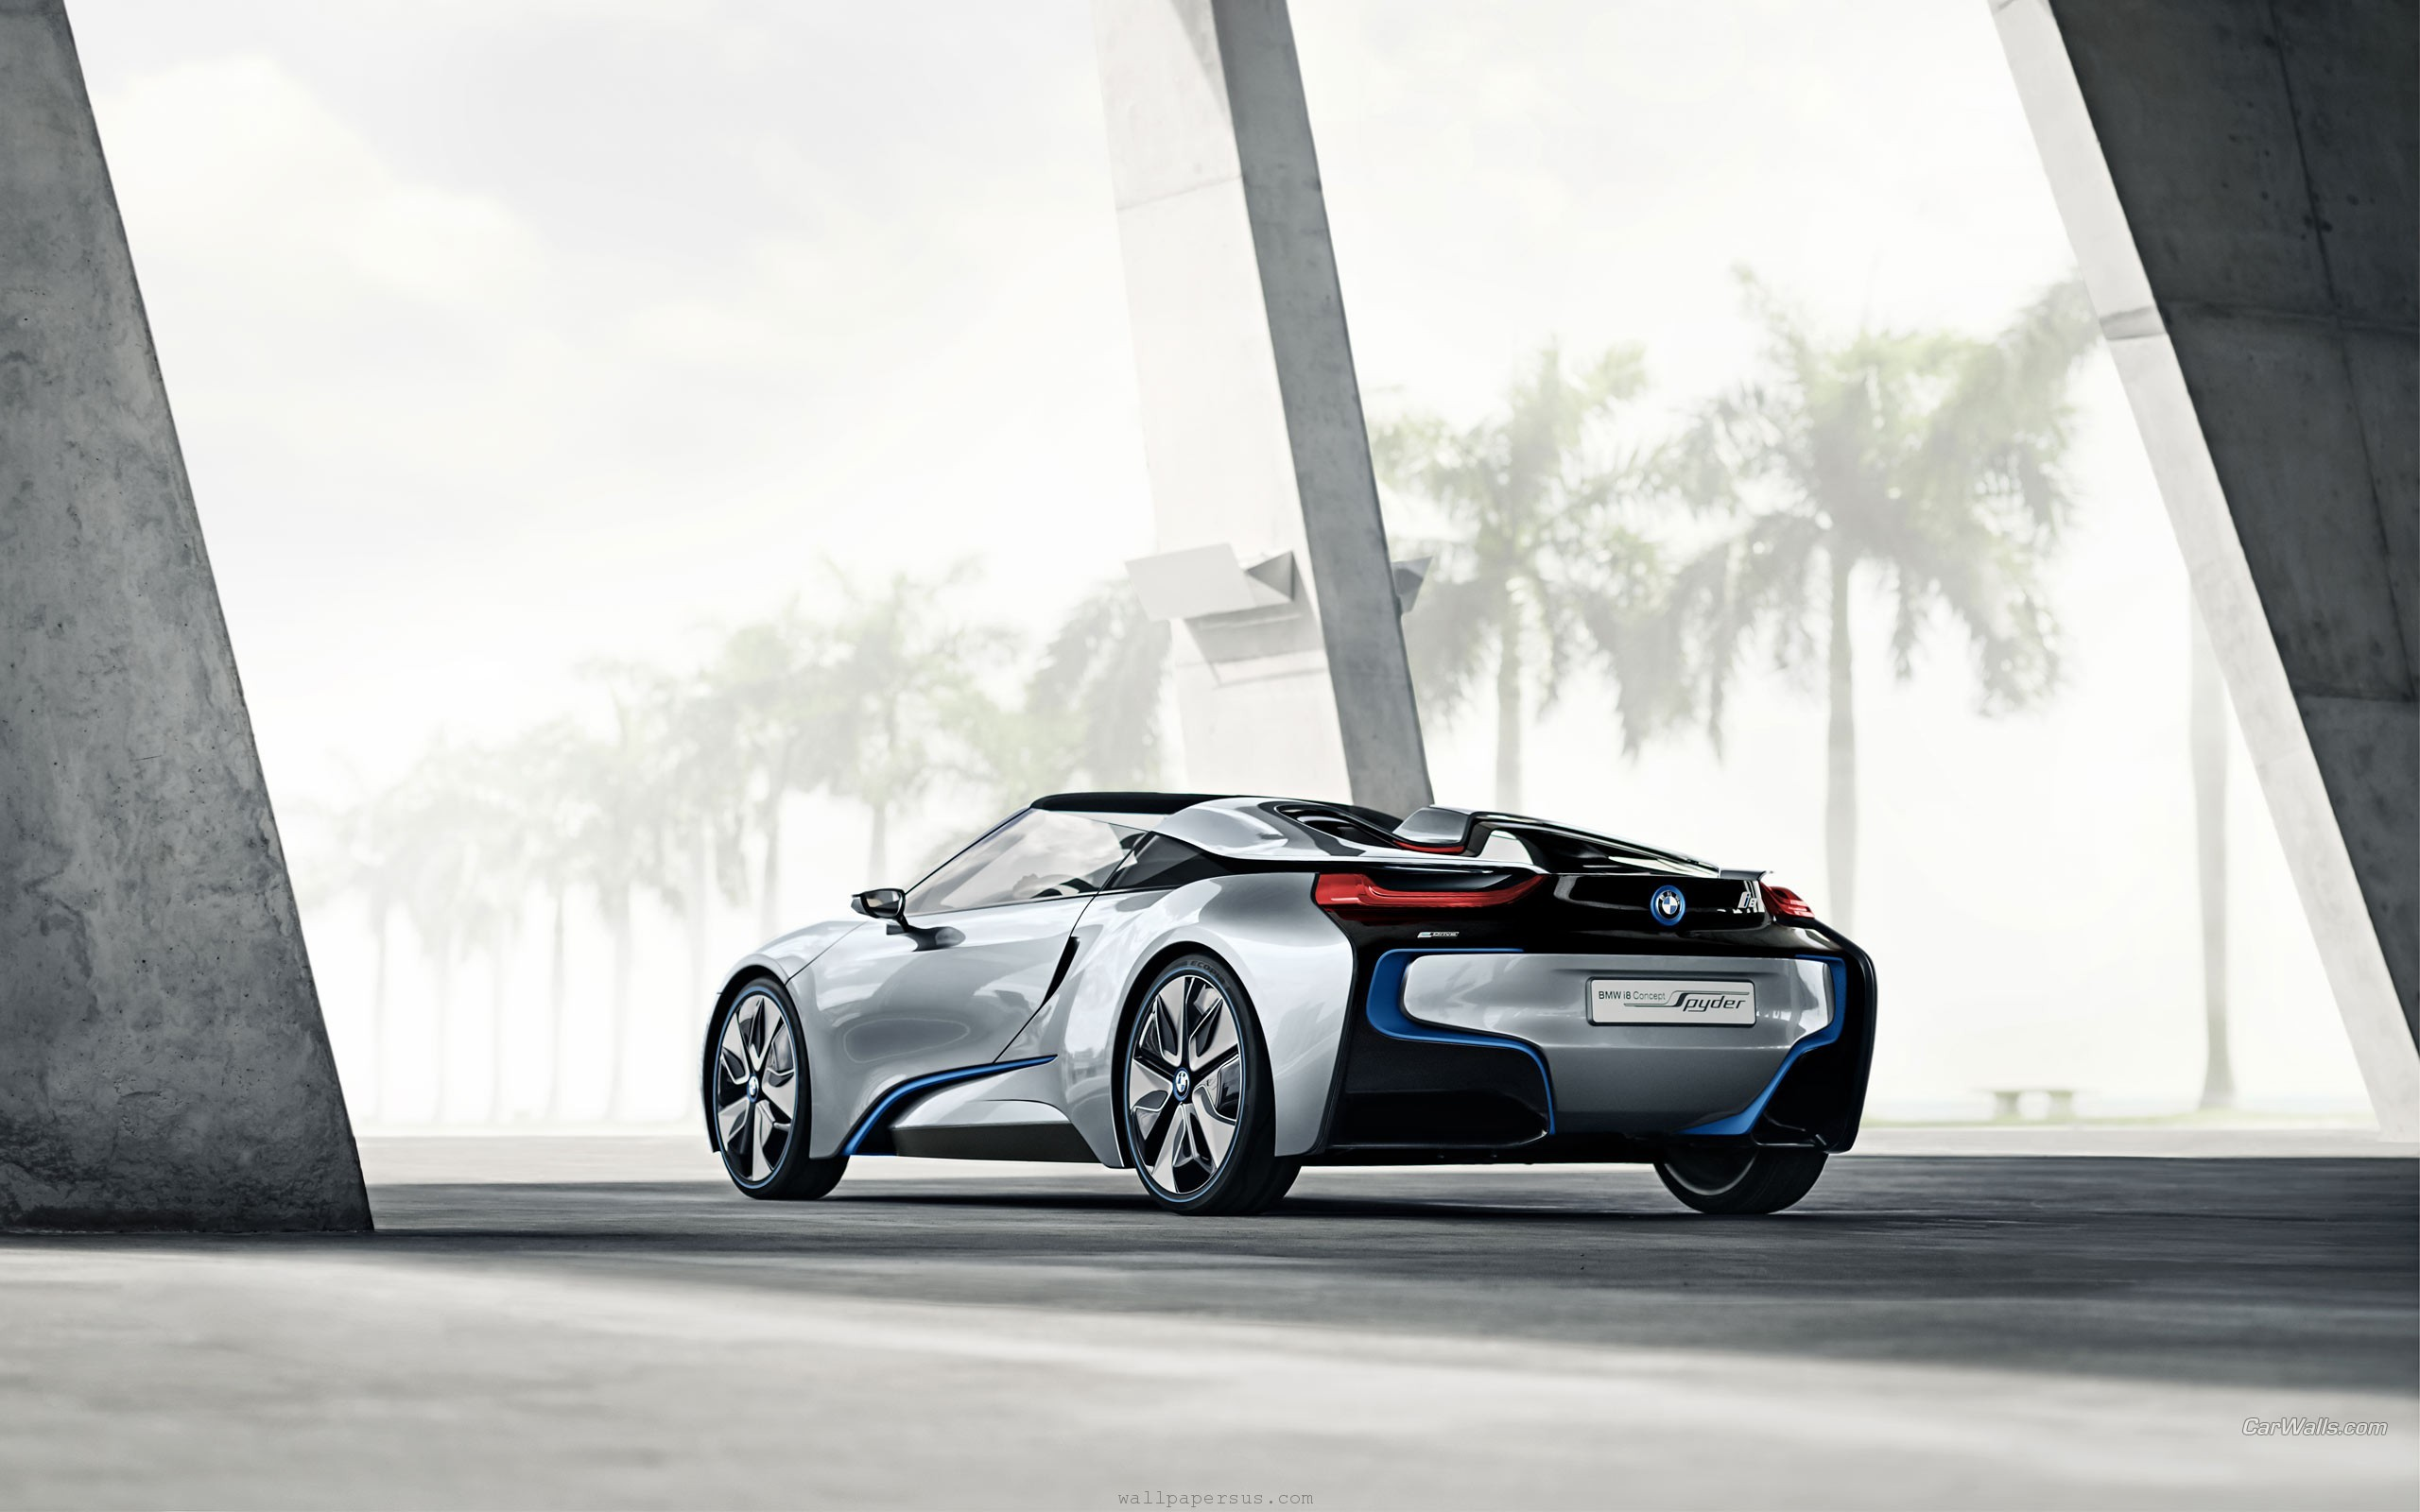 BMW i8 Widescreen Wallpaper